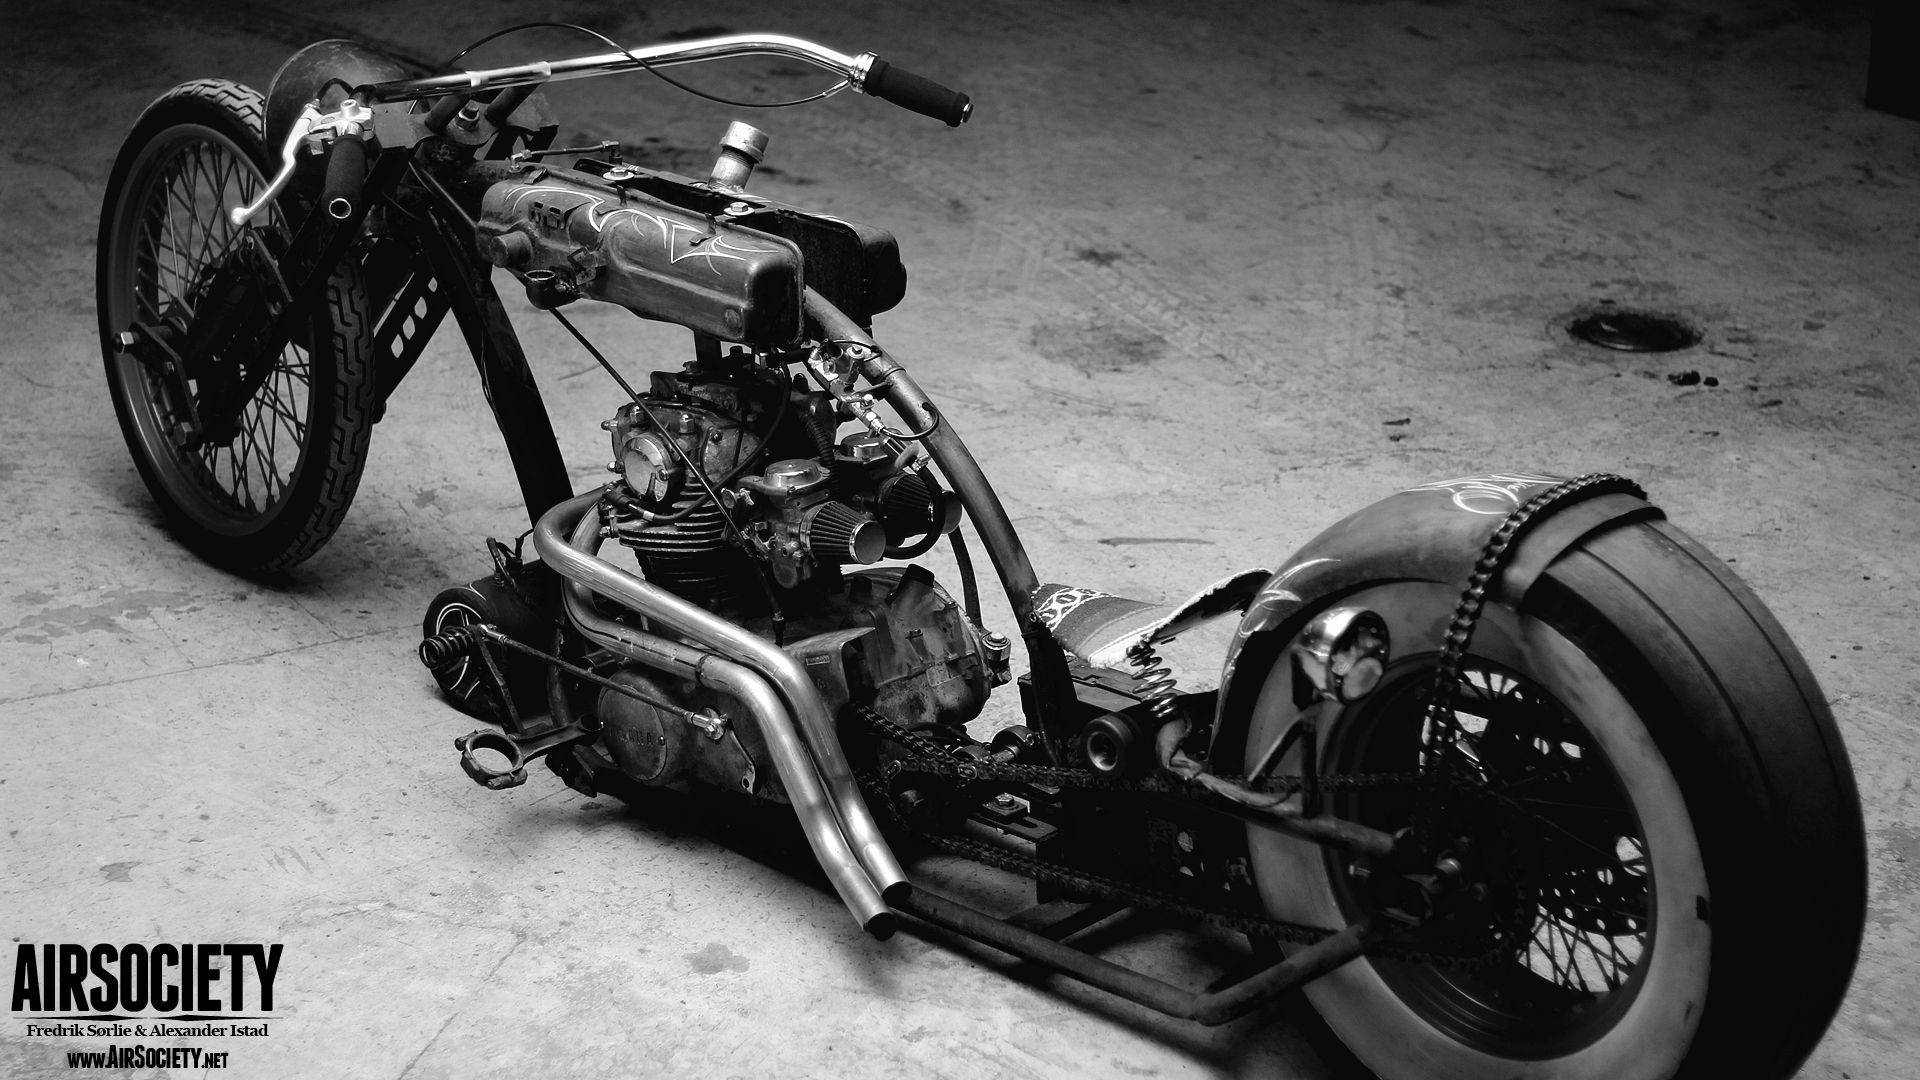 Res: 1920x1080, Bobber Motorcycle Wallpapers Hd